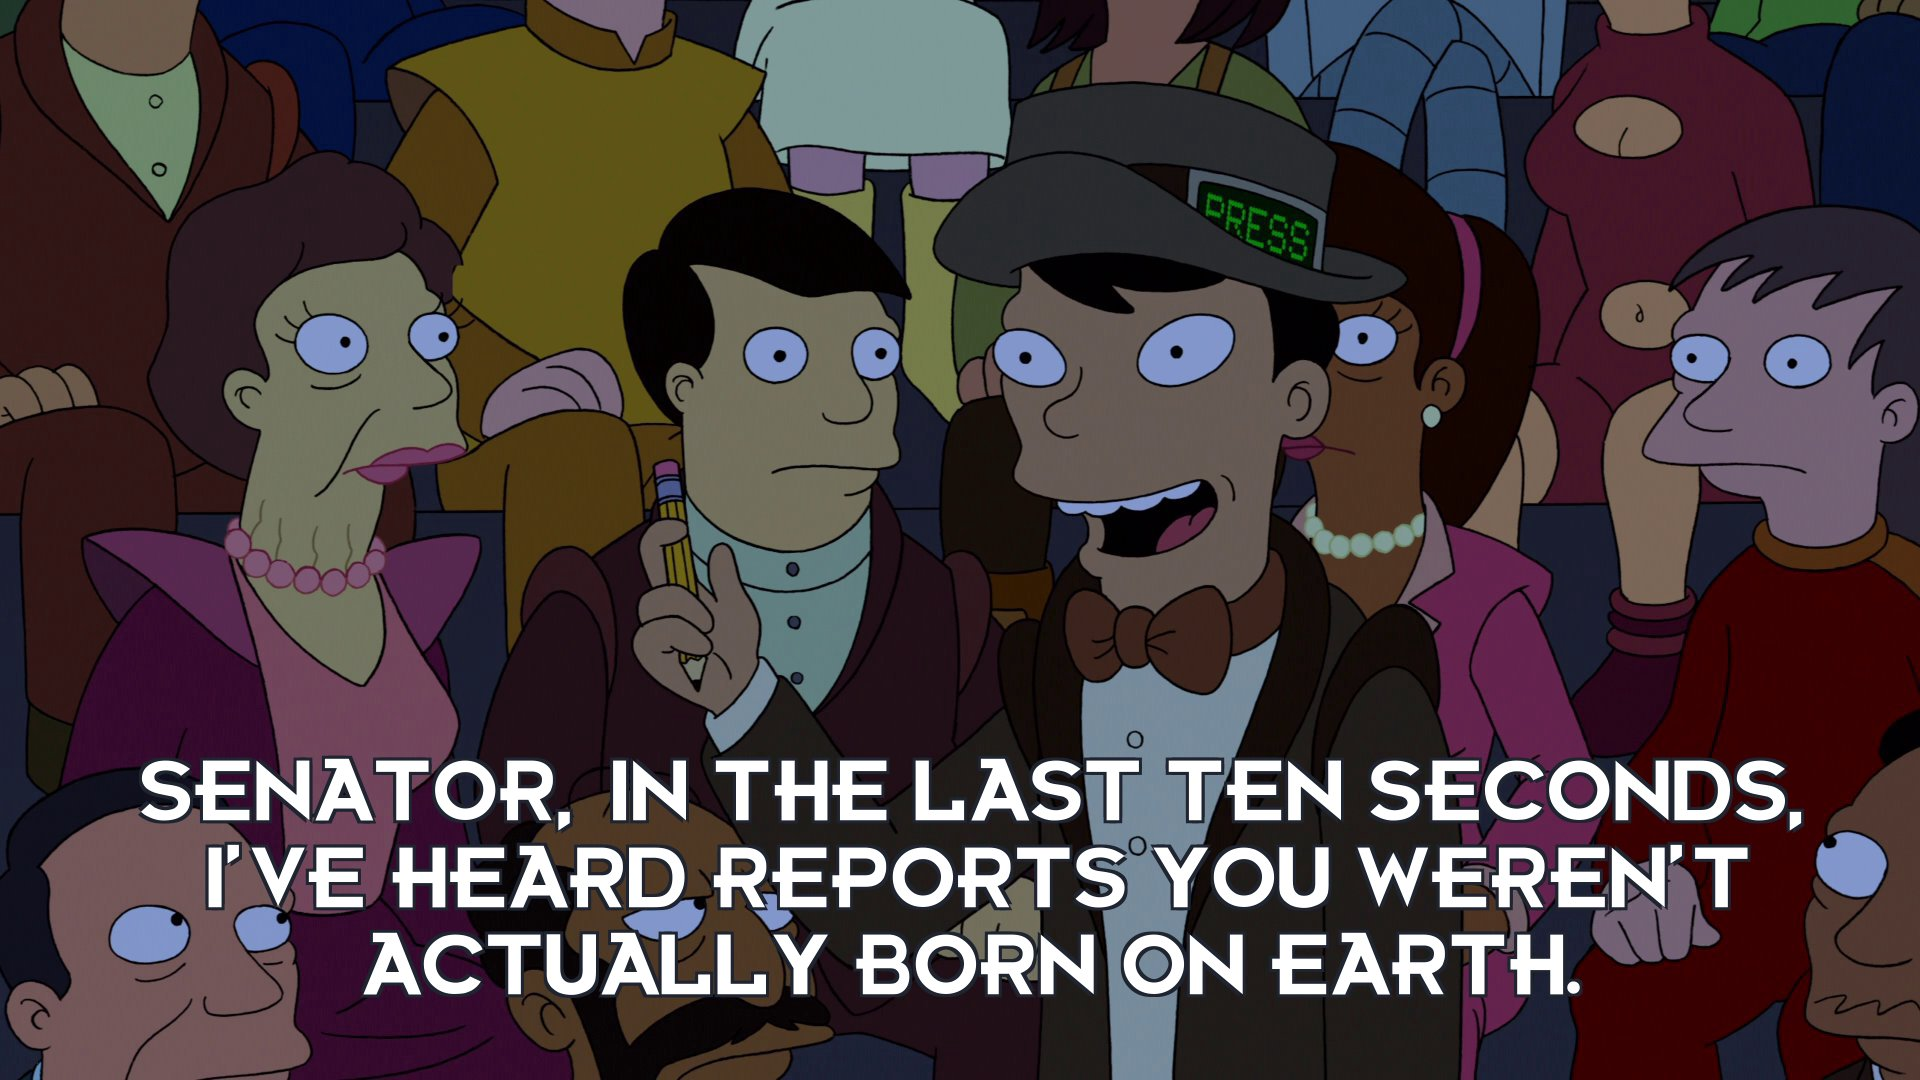 Scoop Chang: Senator, in the last ten seconds, I've heard reports you weren't actually born on Earth.